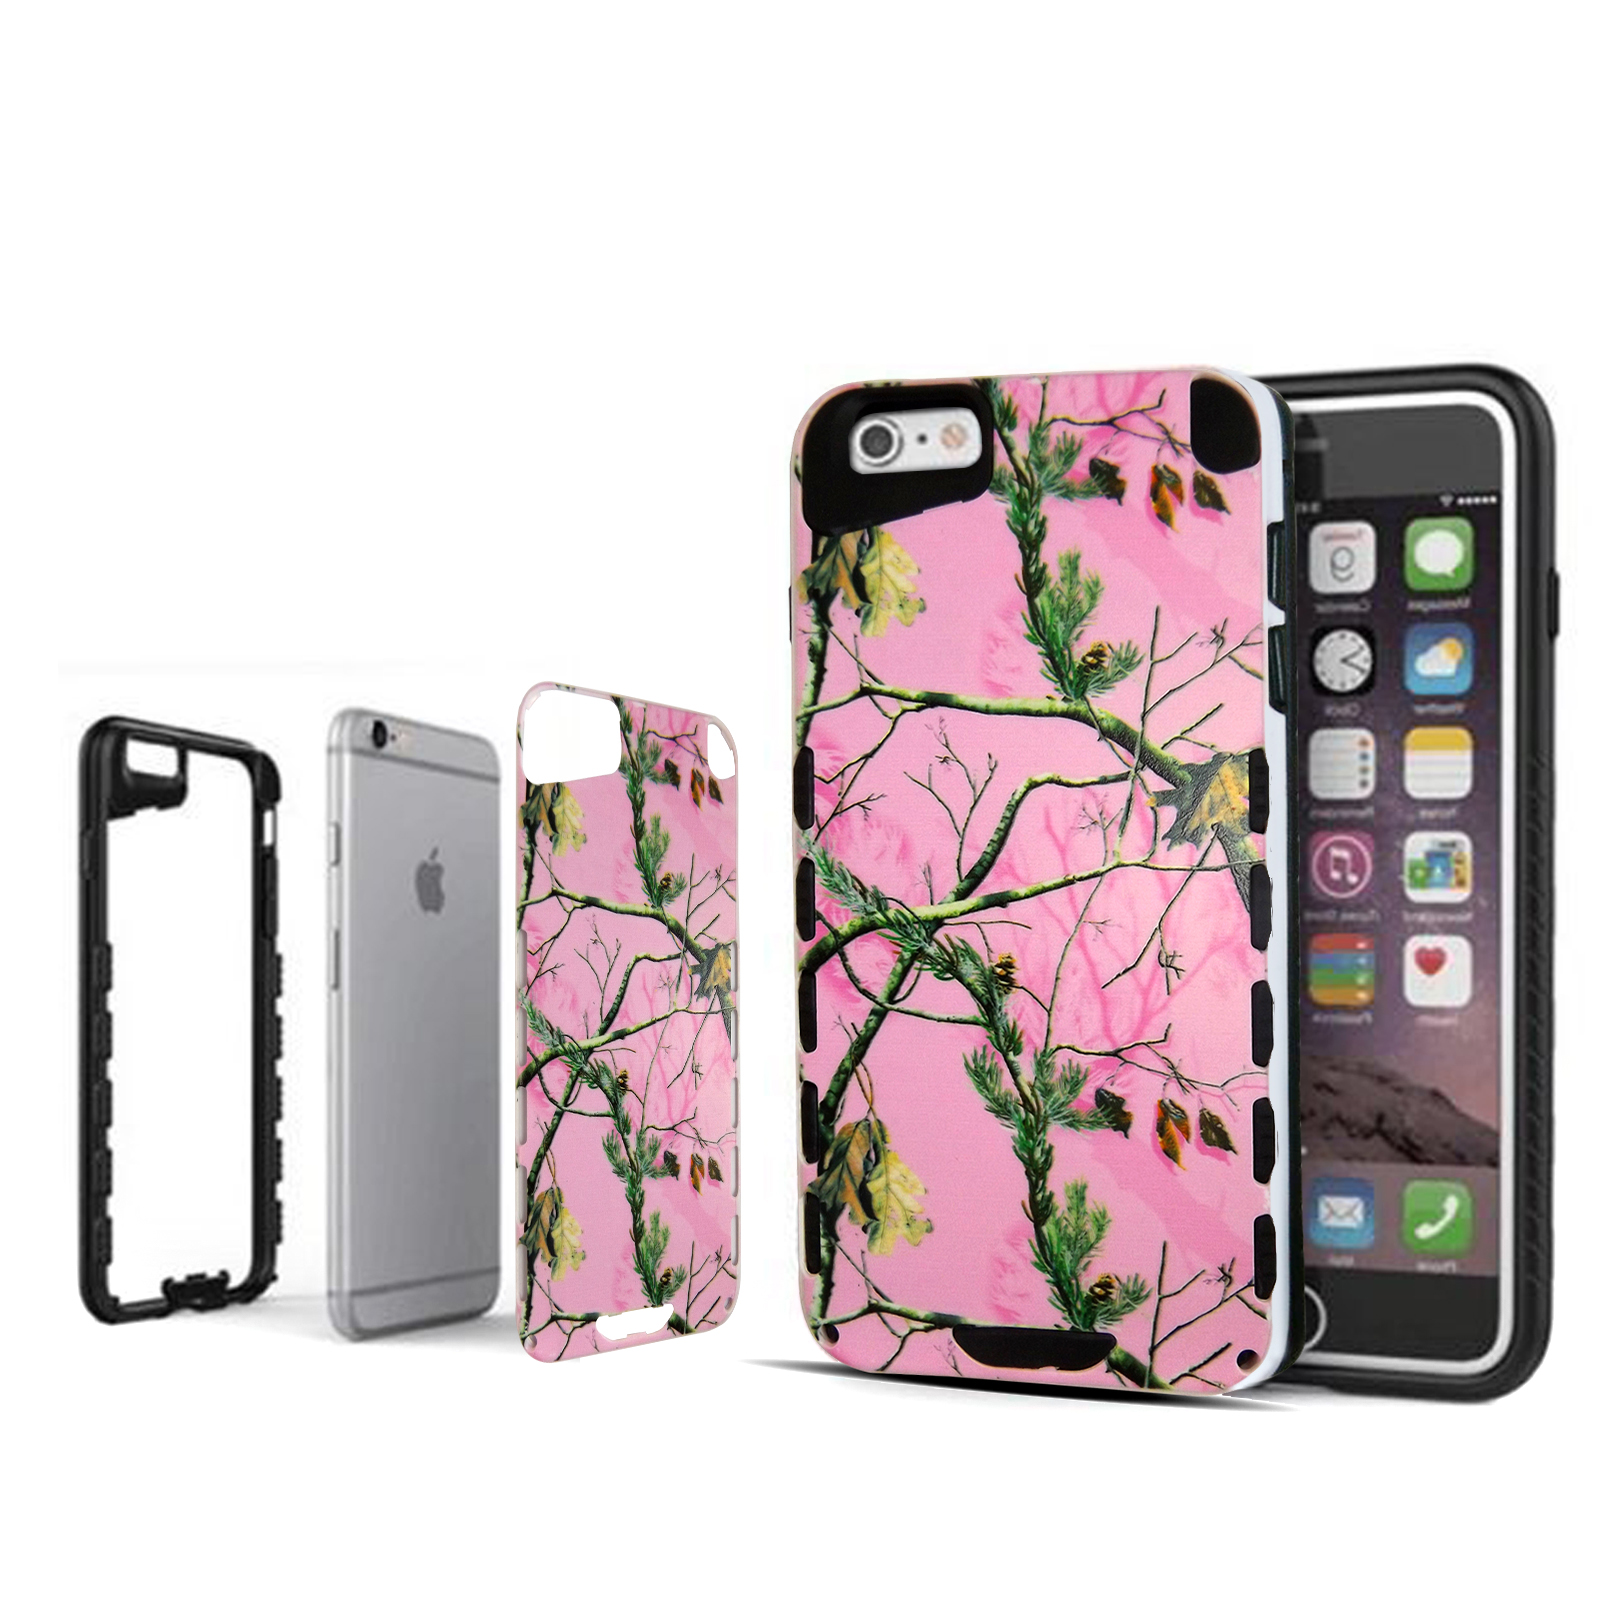 info for 983aa 5b37a Pink Camo Mozy Hybrid For iPhone 6 Advanced Ultra Shock Proof Lightweight  case Drop Protective Case Cover TPU+PC Case Shock Absorb Enhanced Bumper ...